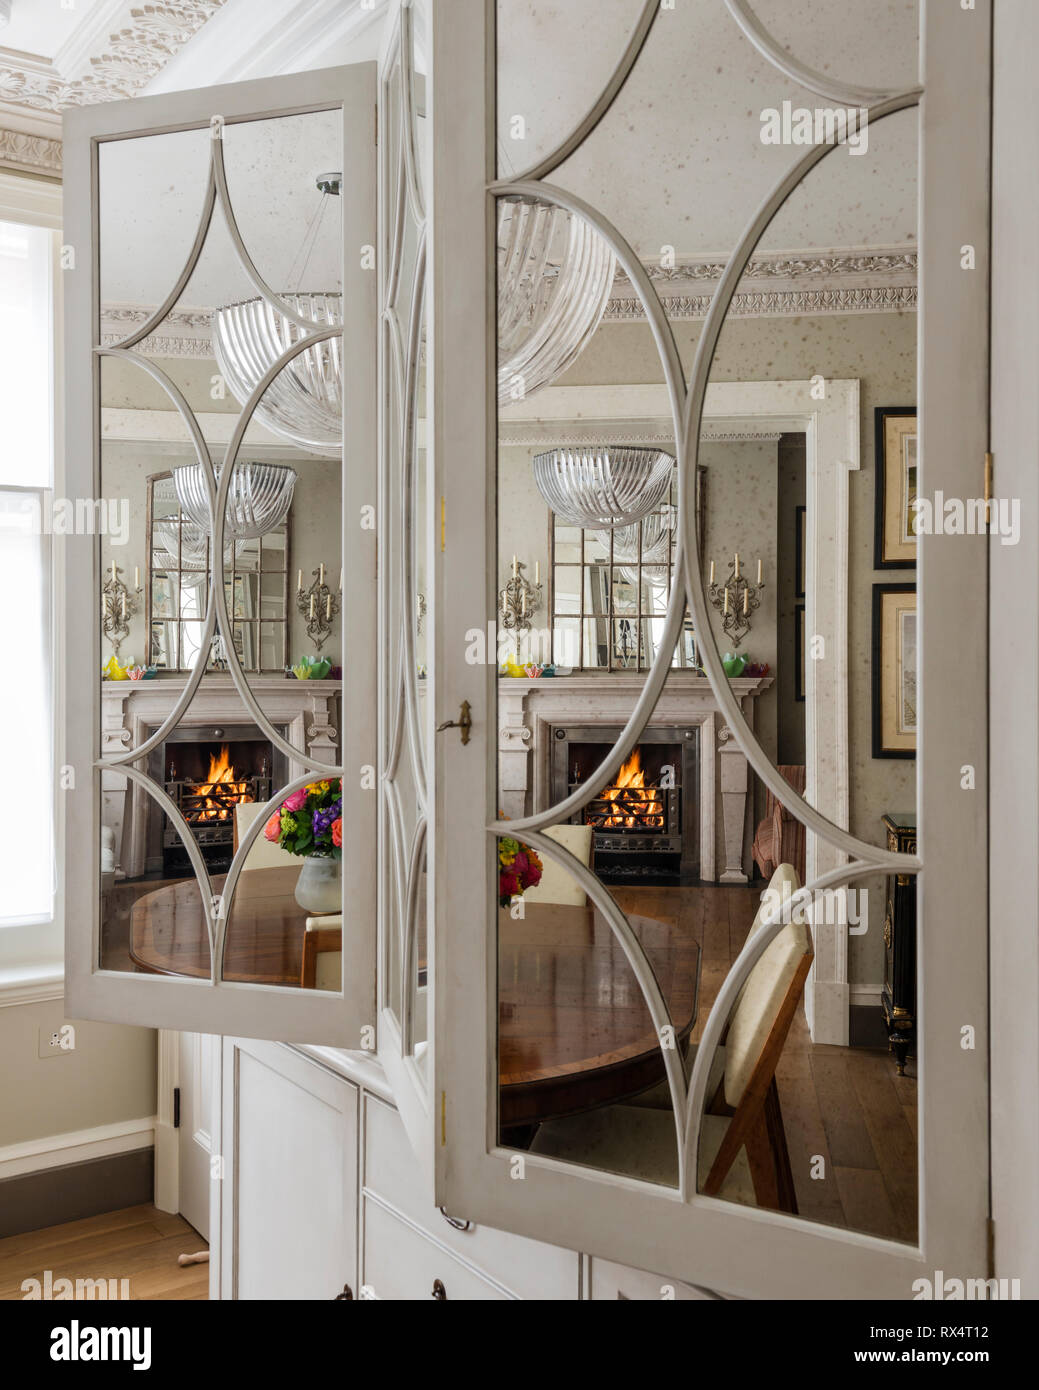 Reflection Of Dining Room In Mirrored Cupboard Stock Photo Alamy